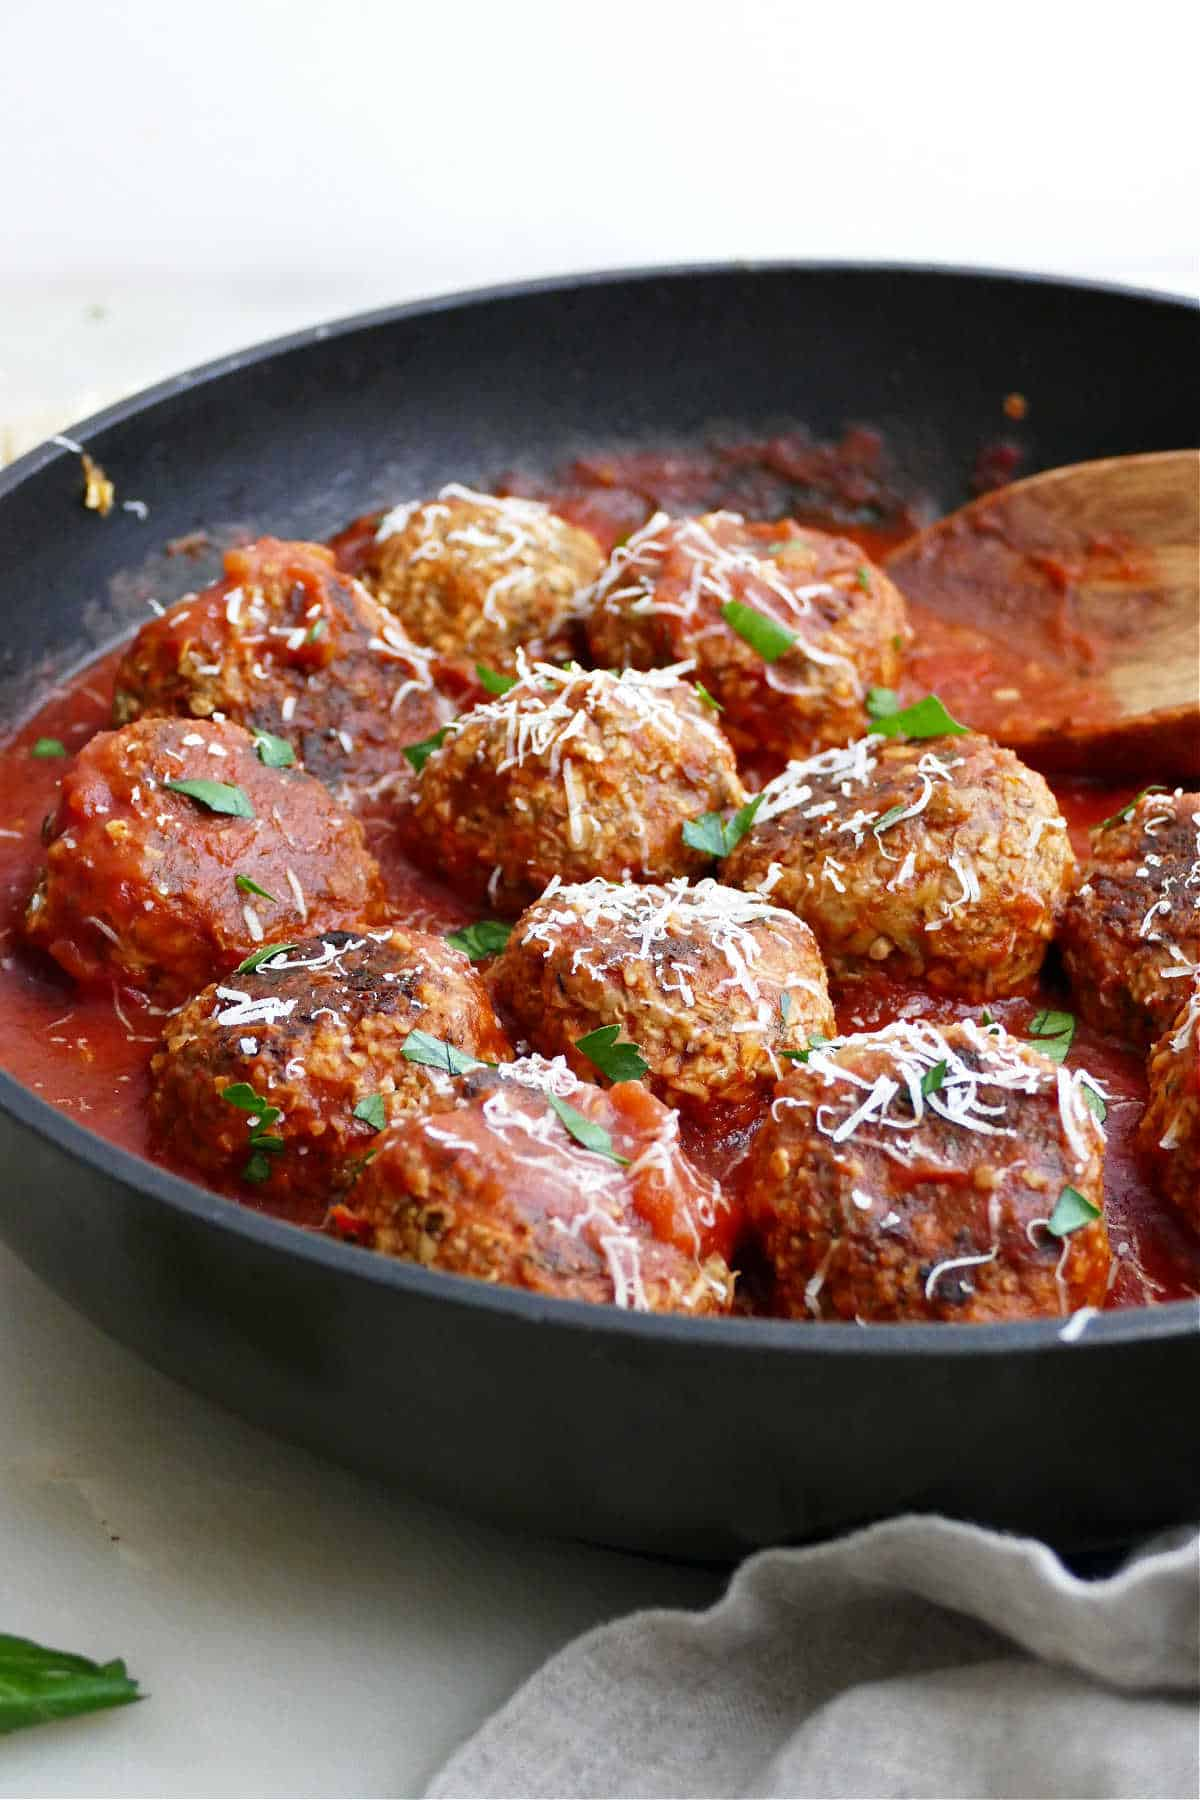 eggplant meatballs in a skillet simmering in tomato sauce and topped with parsley